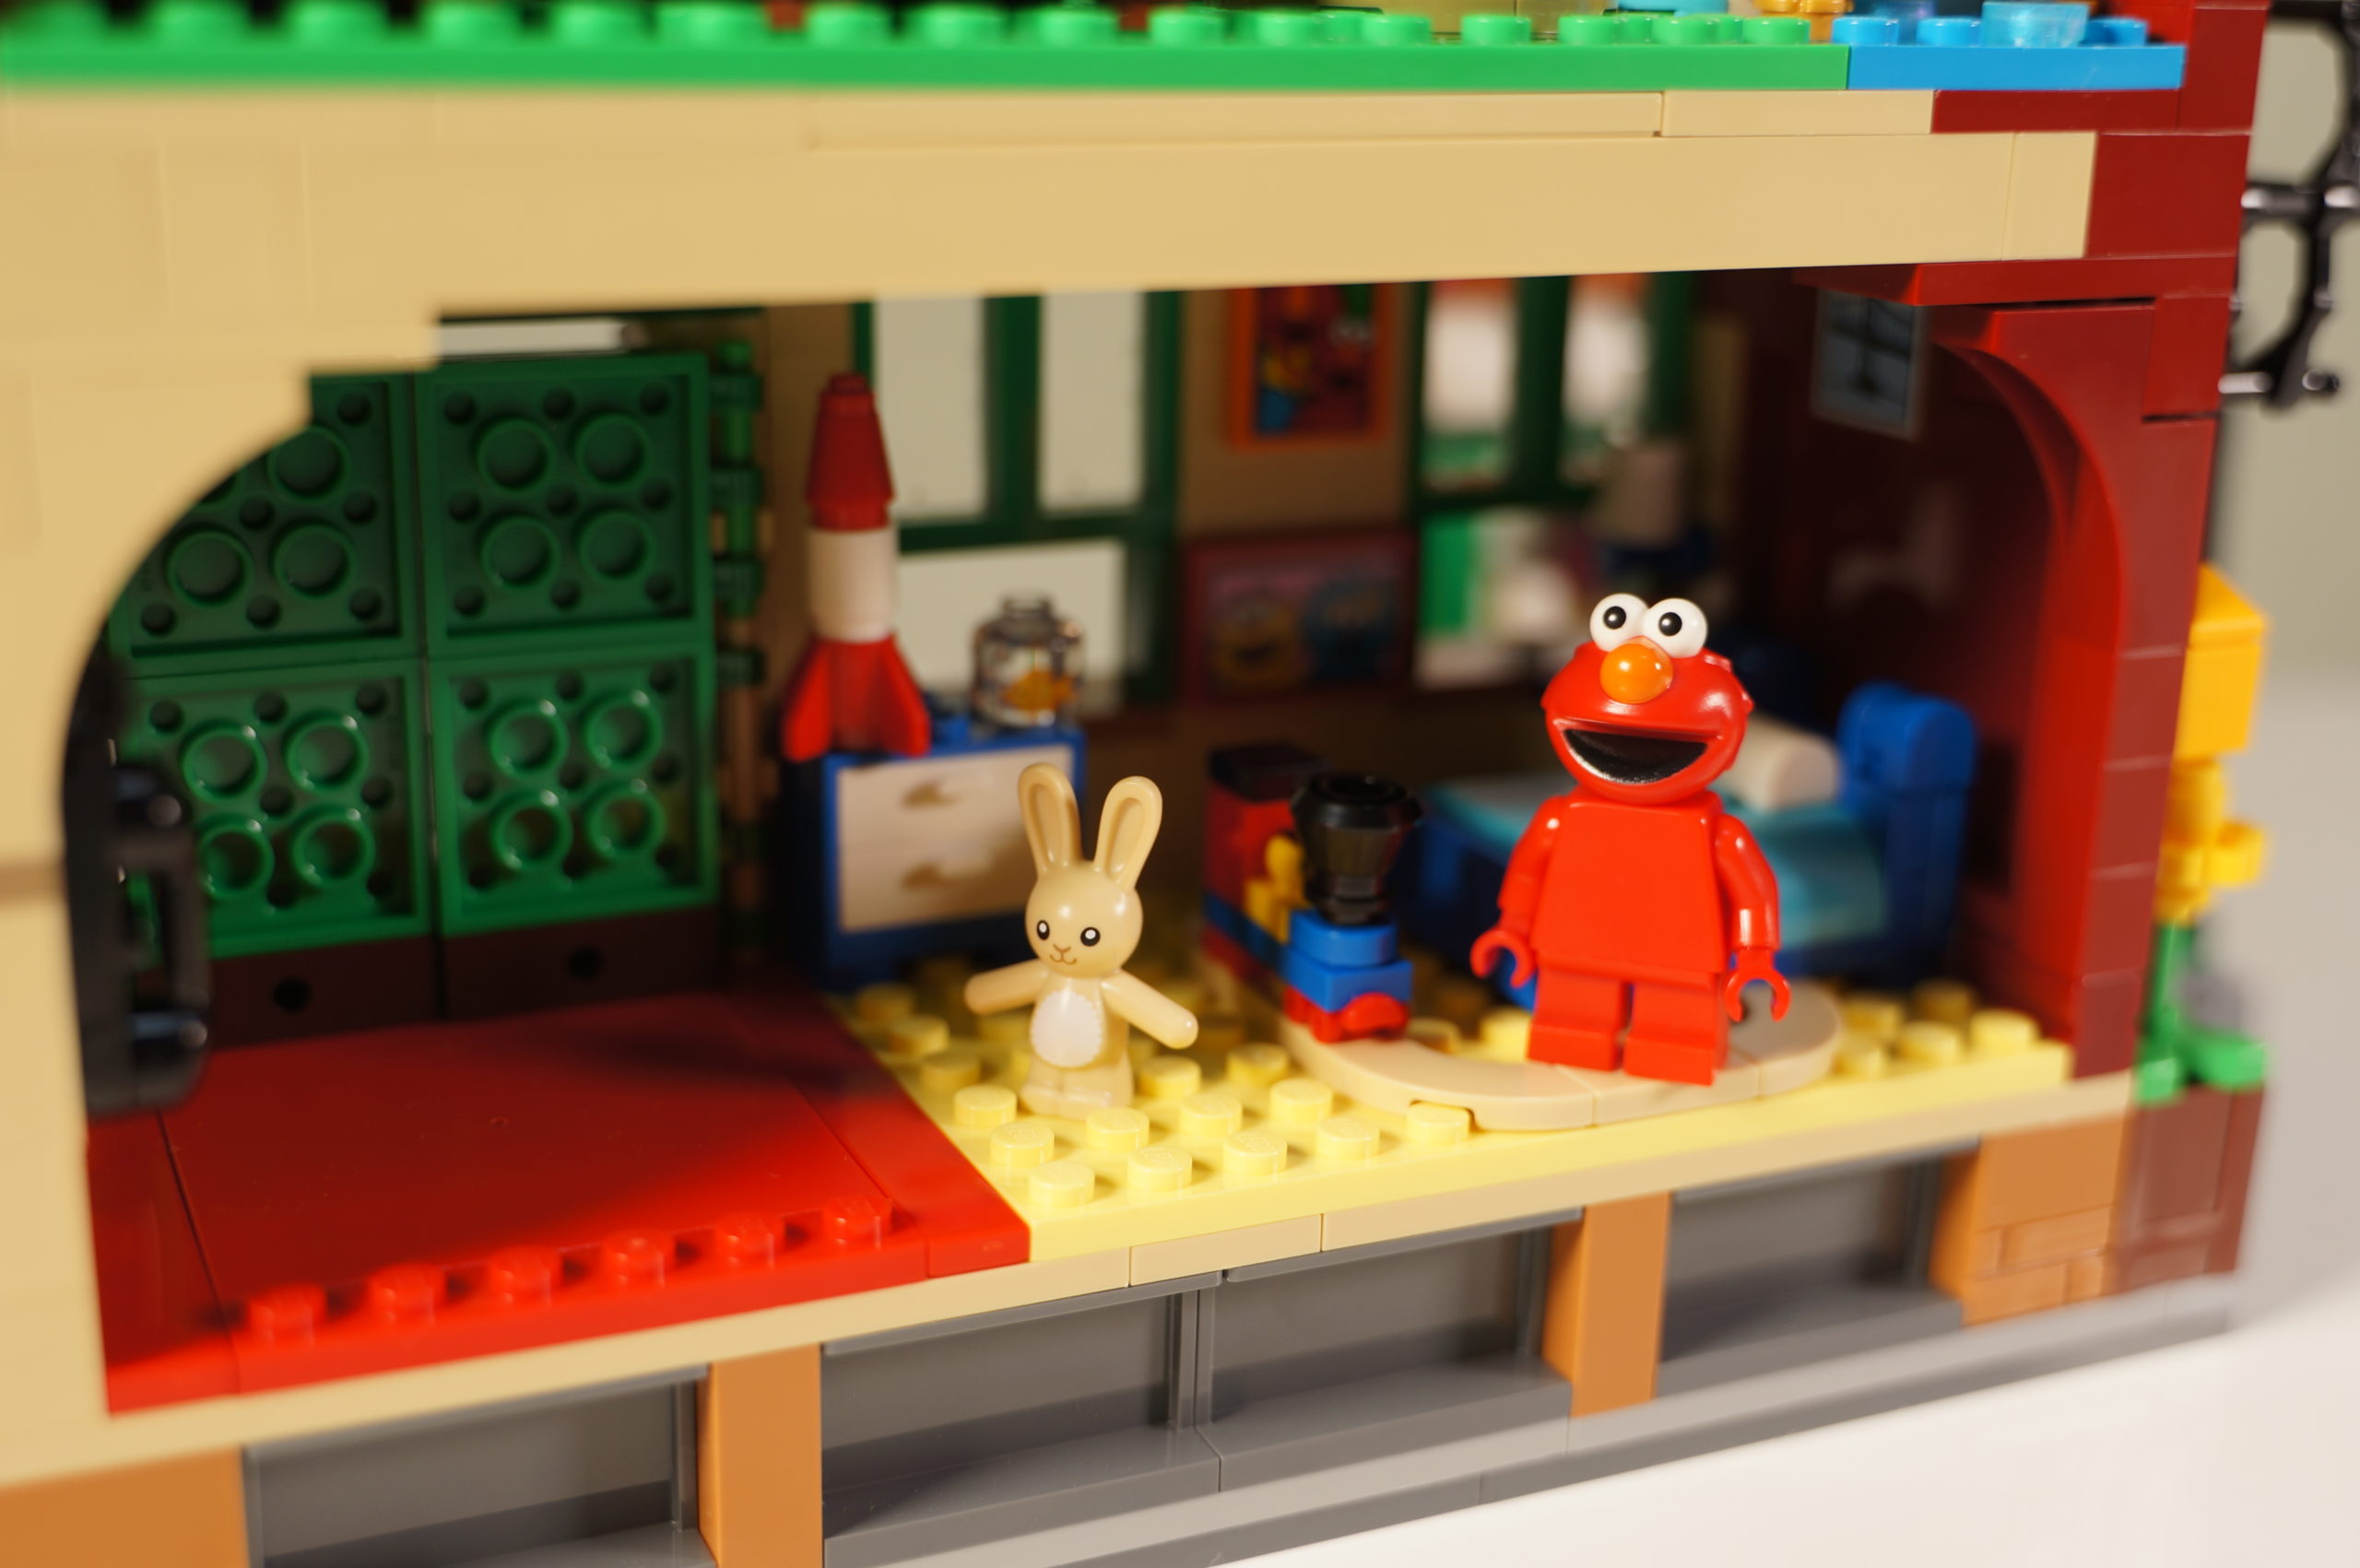 Elmo Room with minifig